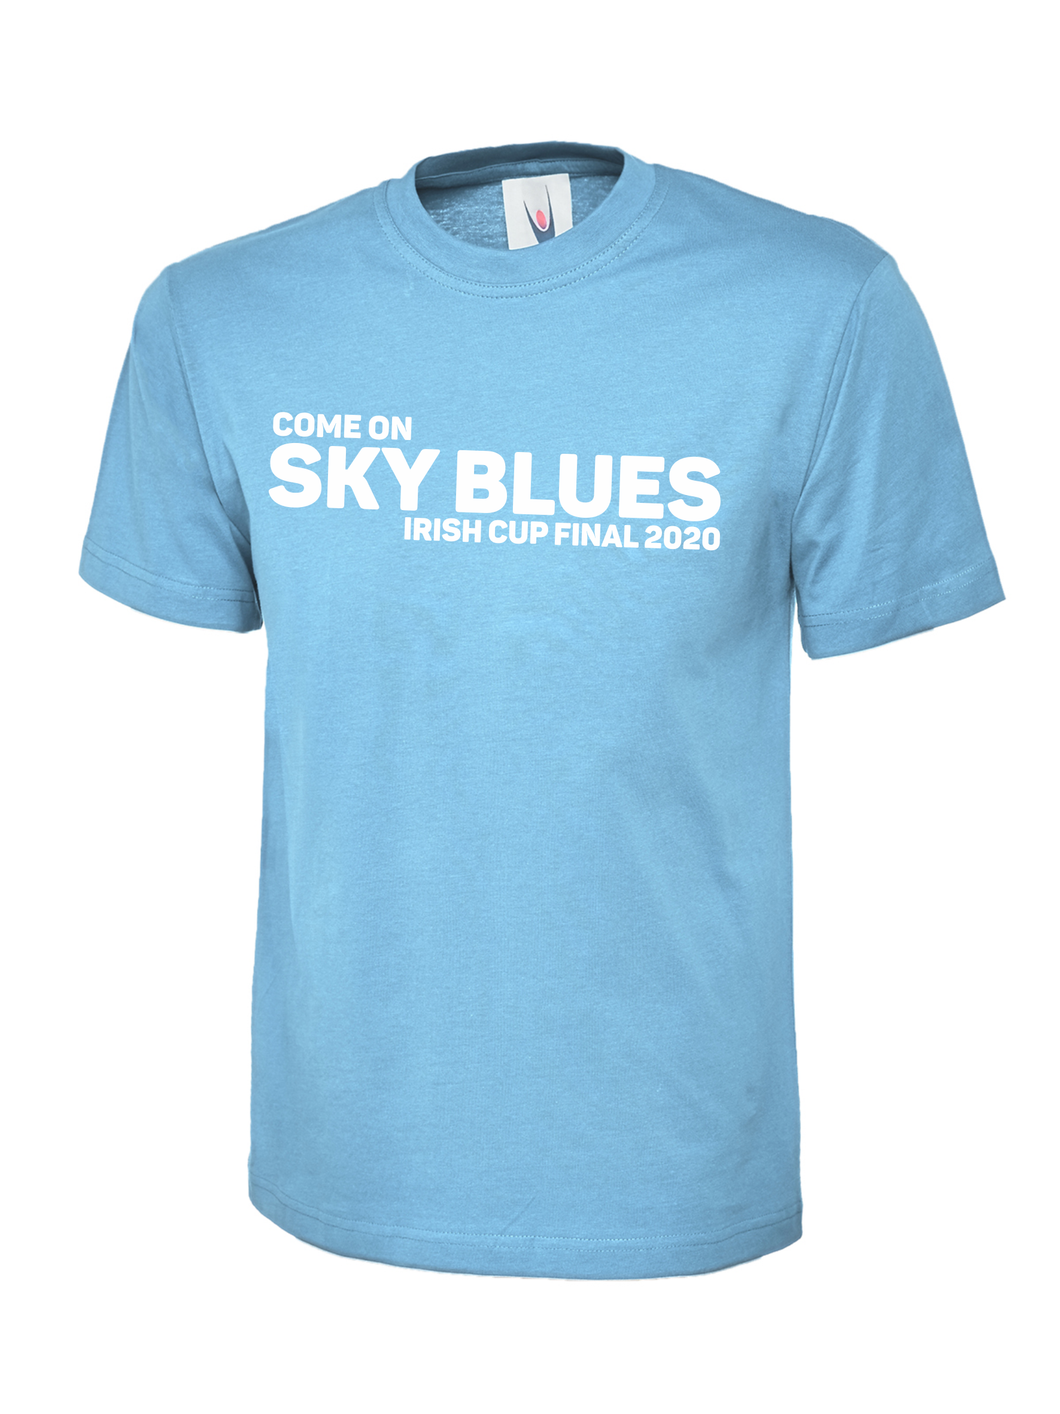 Kids Ballymena Utd Irish Cup Final Sky Blue Tee